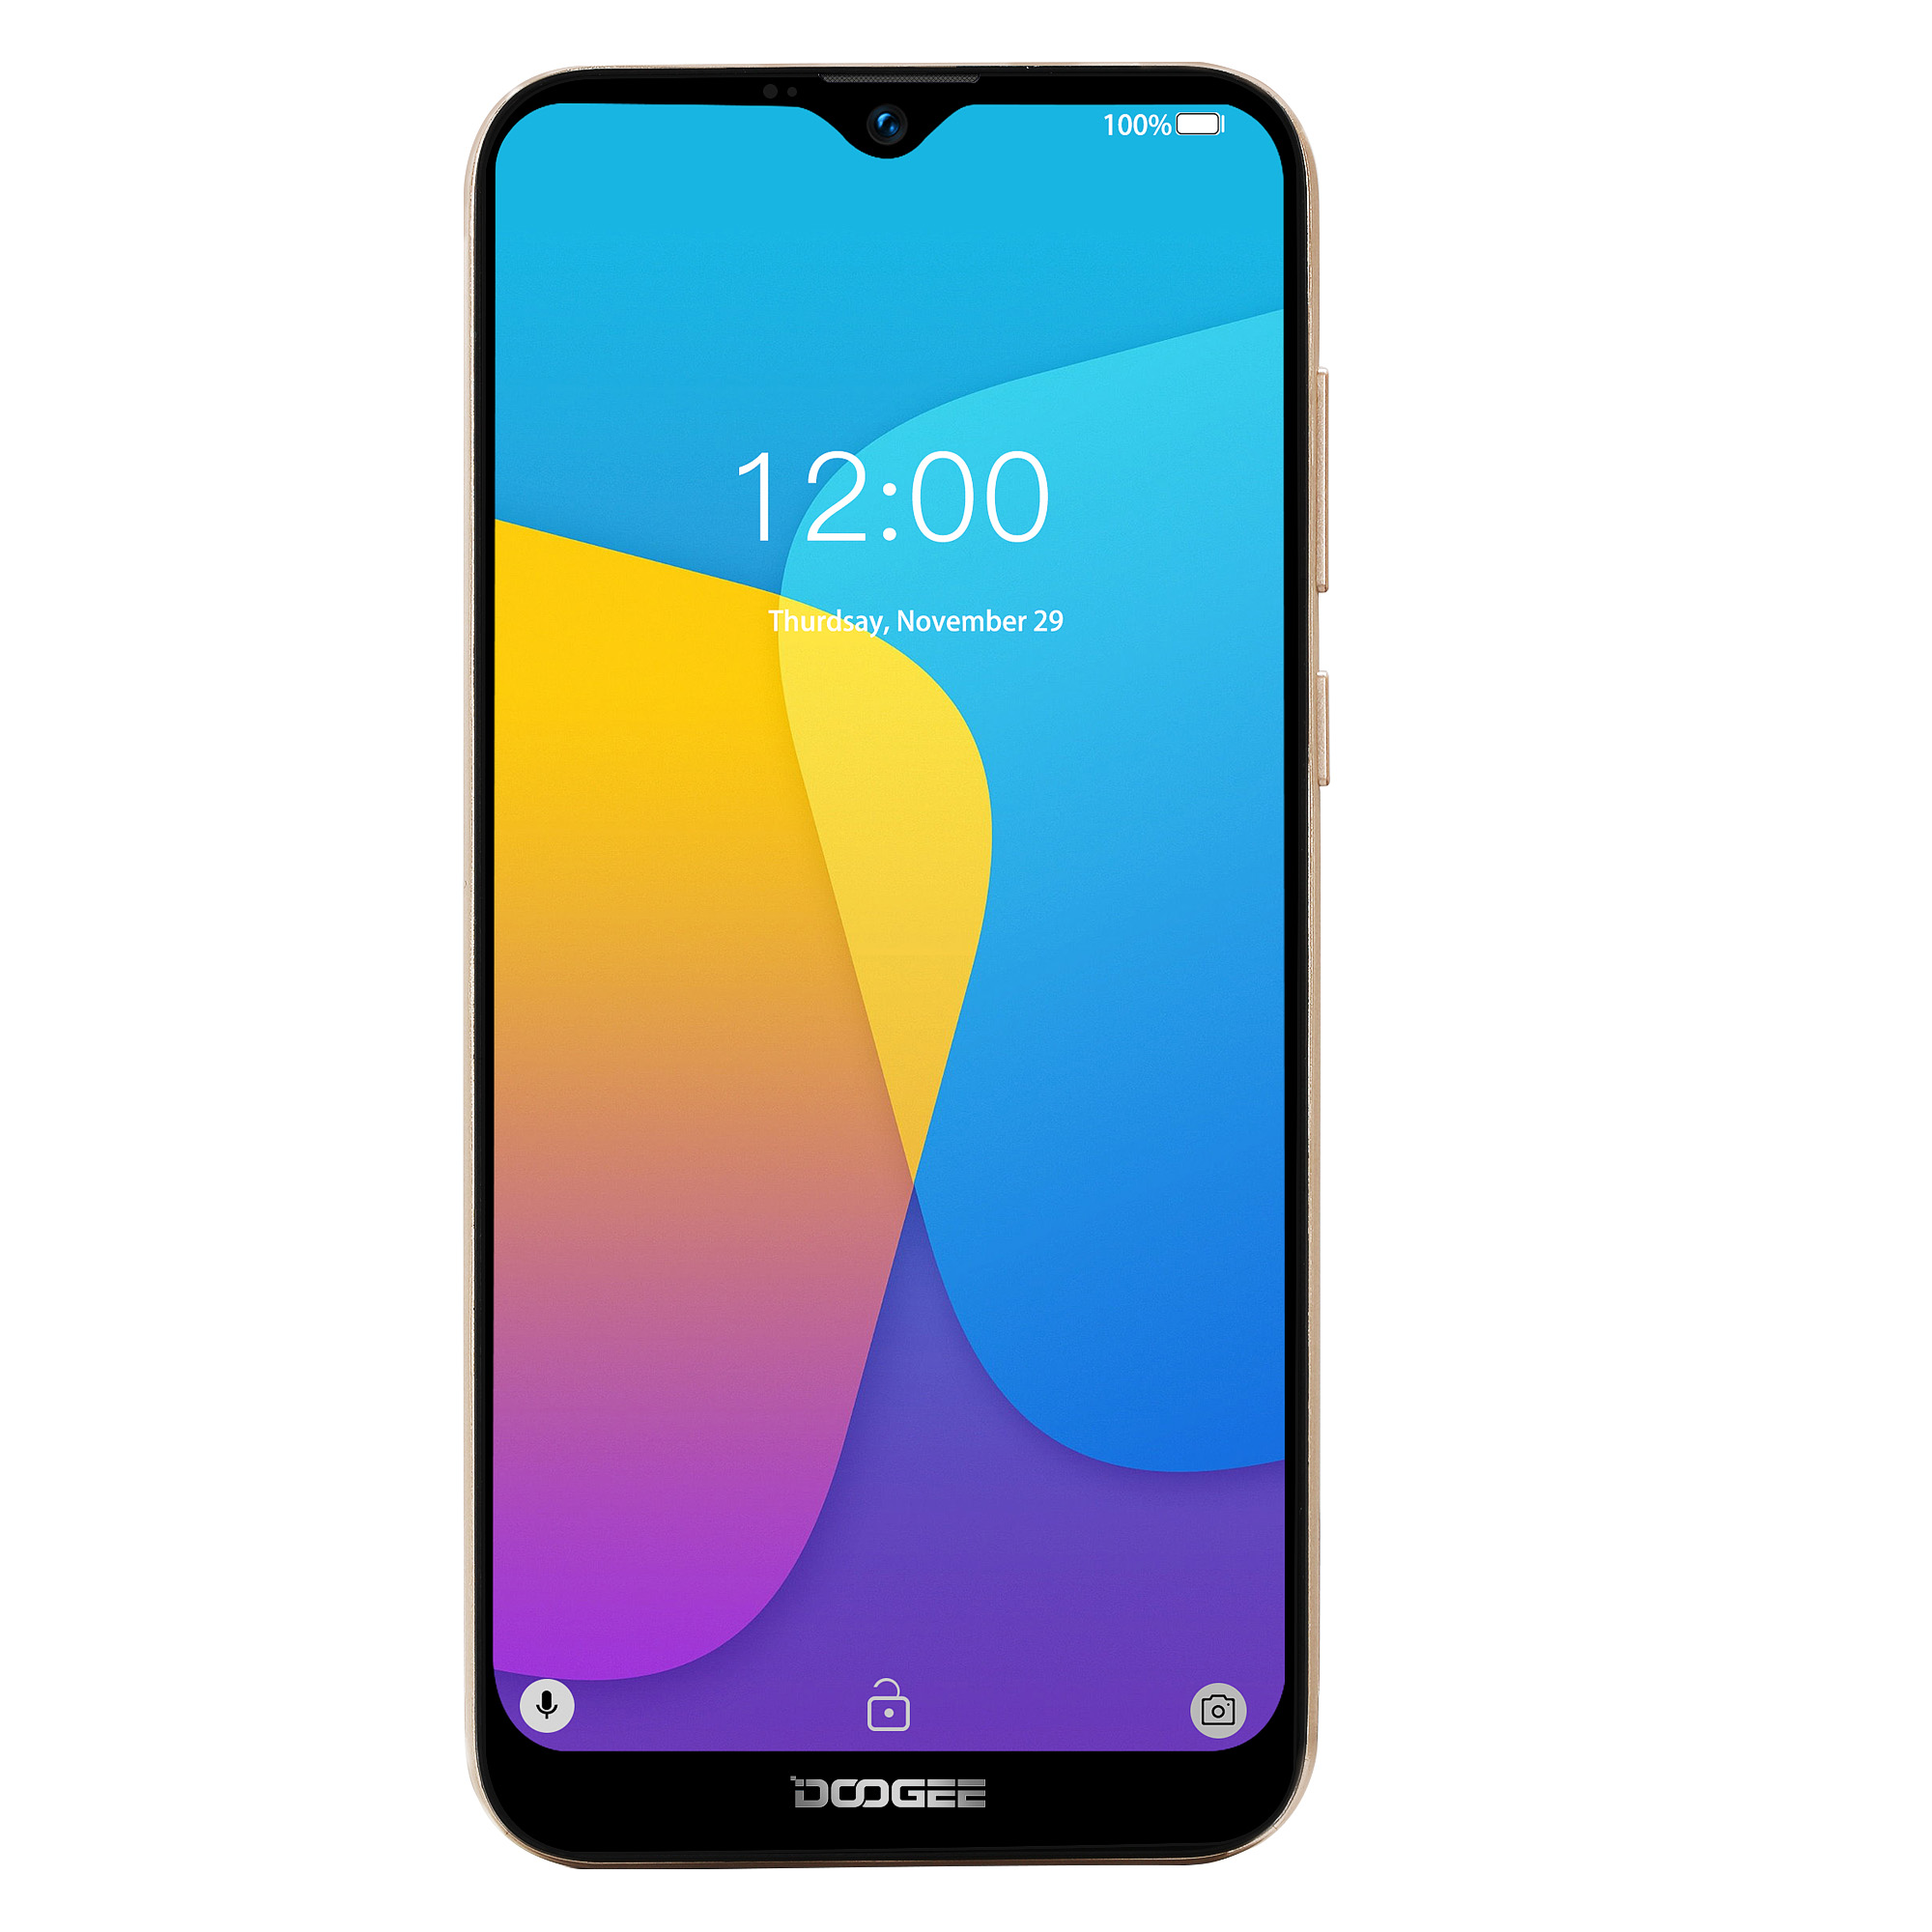 DOOGEE X90 Cellphone 6.1inch 19:9 Waterdrop LTPS Screen Smartphone Quad Core CPU 1GB RAM+16GB ROM 3400mAh Battery Dual SIM Cards 8MP+5MP Camera Android 8.1 OS  Gold_Russian version